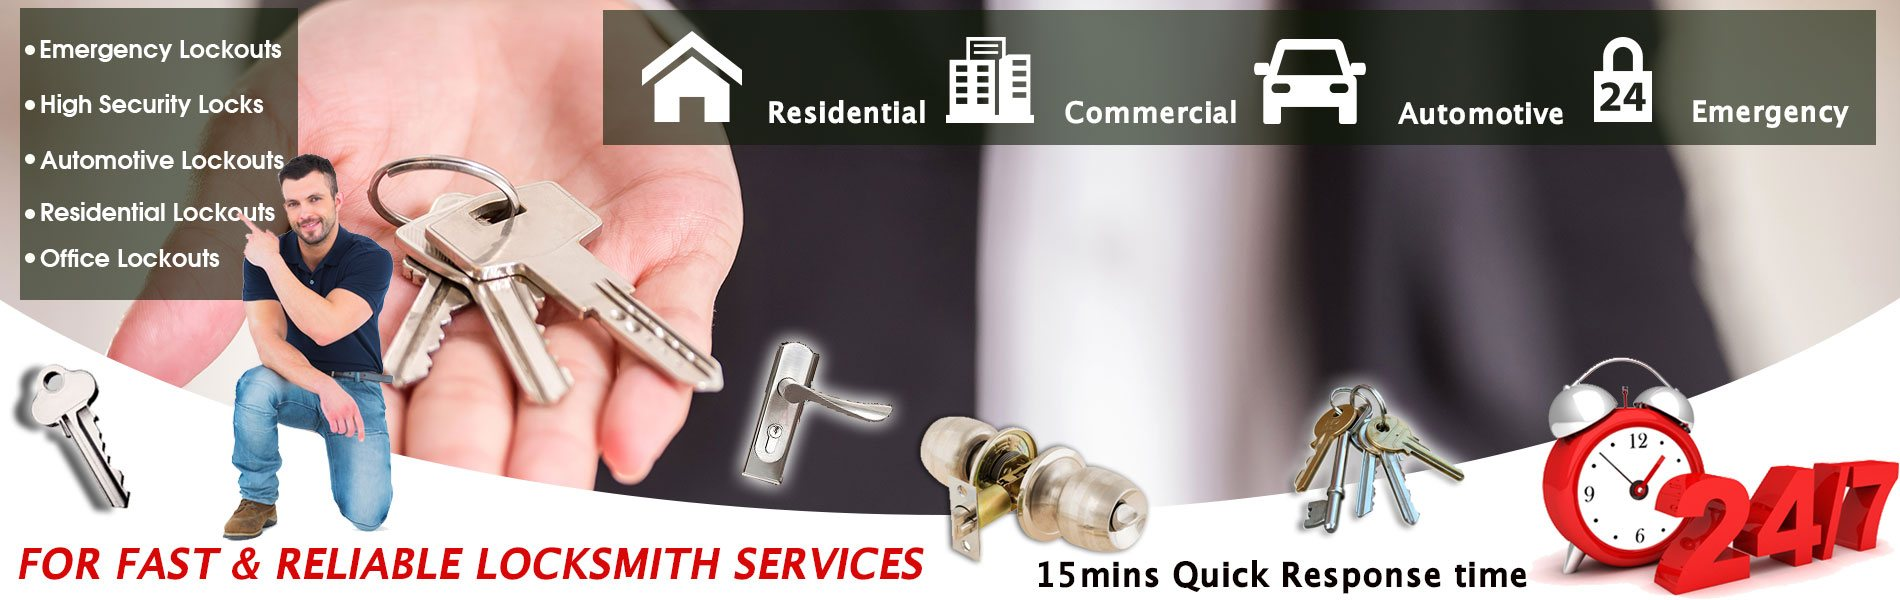 Village Locksmith Store Orlando, FL 407-572-0176